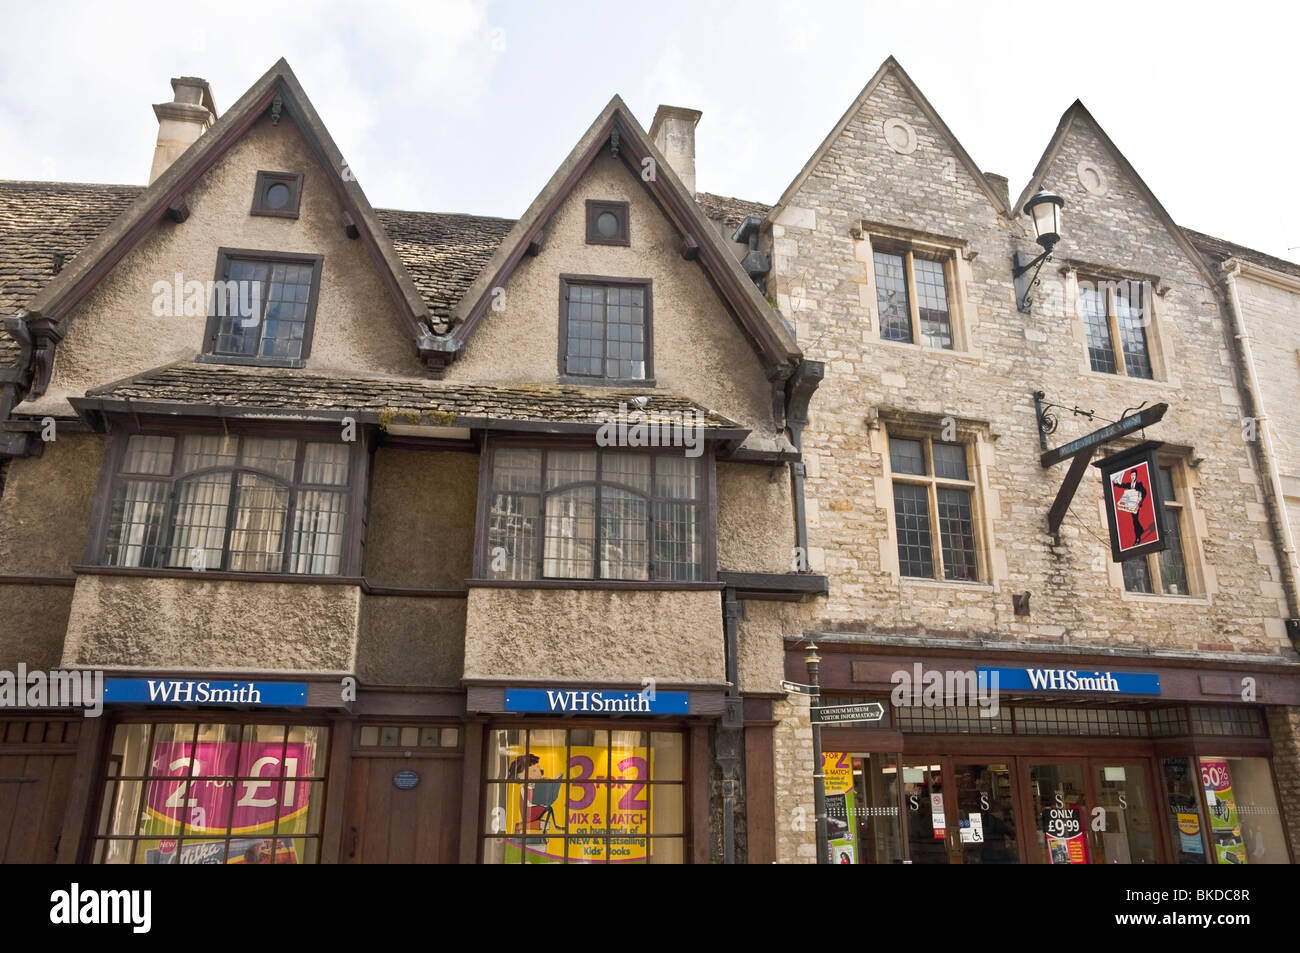 WH Smith store within old stone period buildings in the market town of Cirencester, Cotswolds, Gloucestershire, - Stock Image